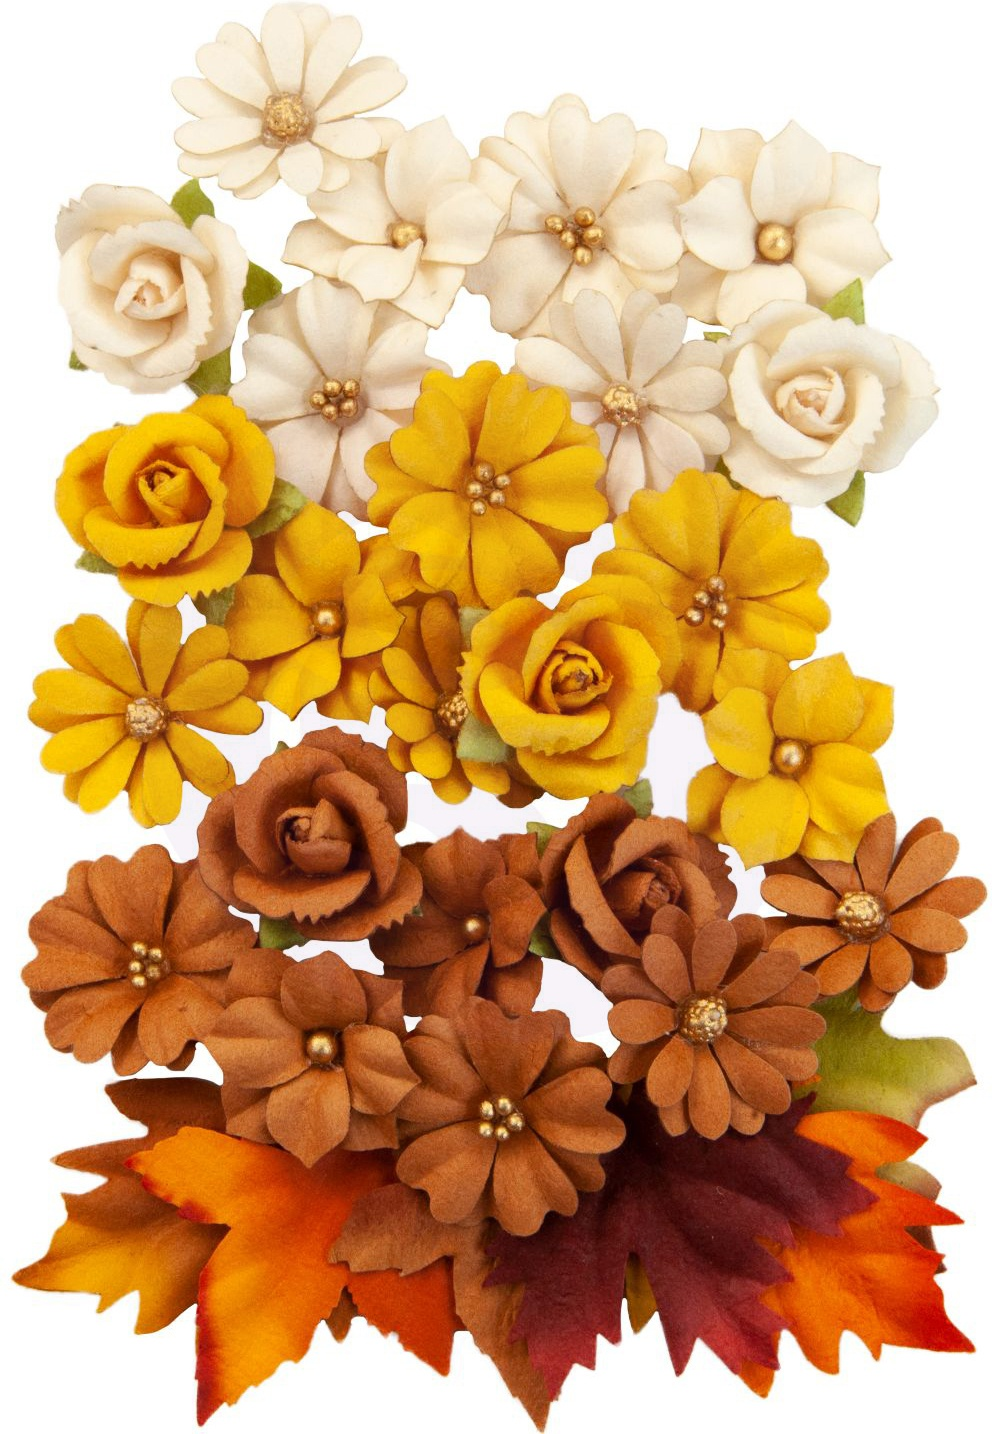 Prima - Autumn Sunset Flowers - Corn Mazes, 30/pkg